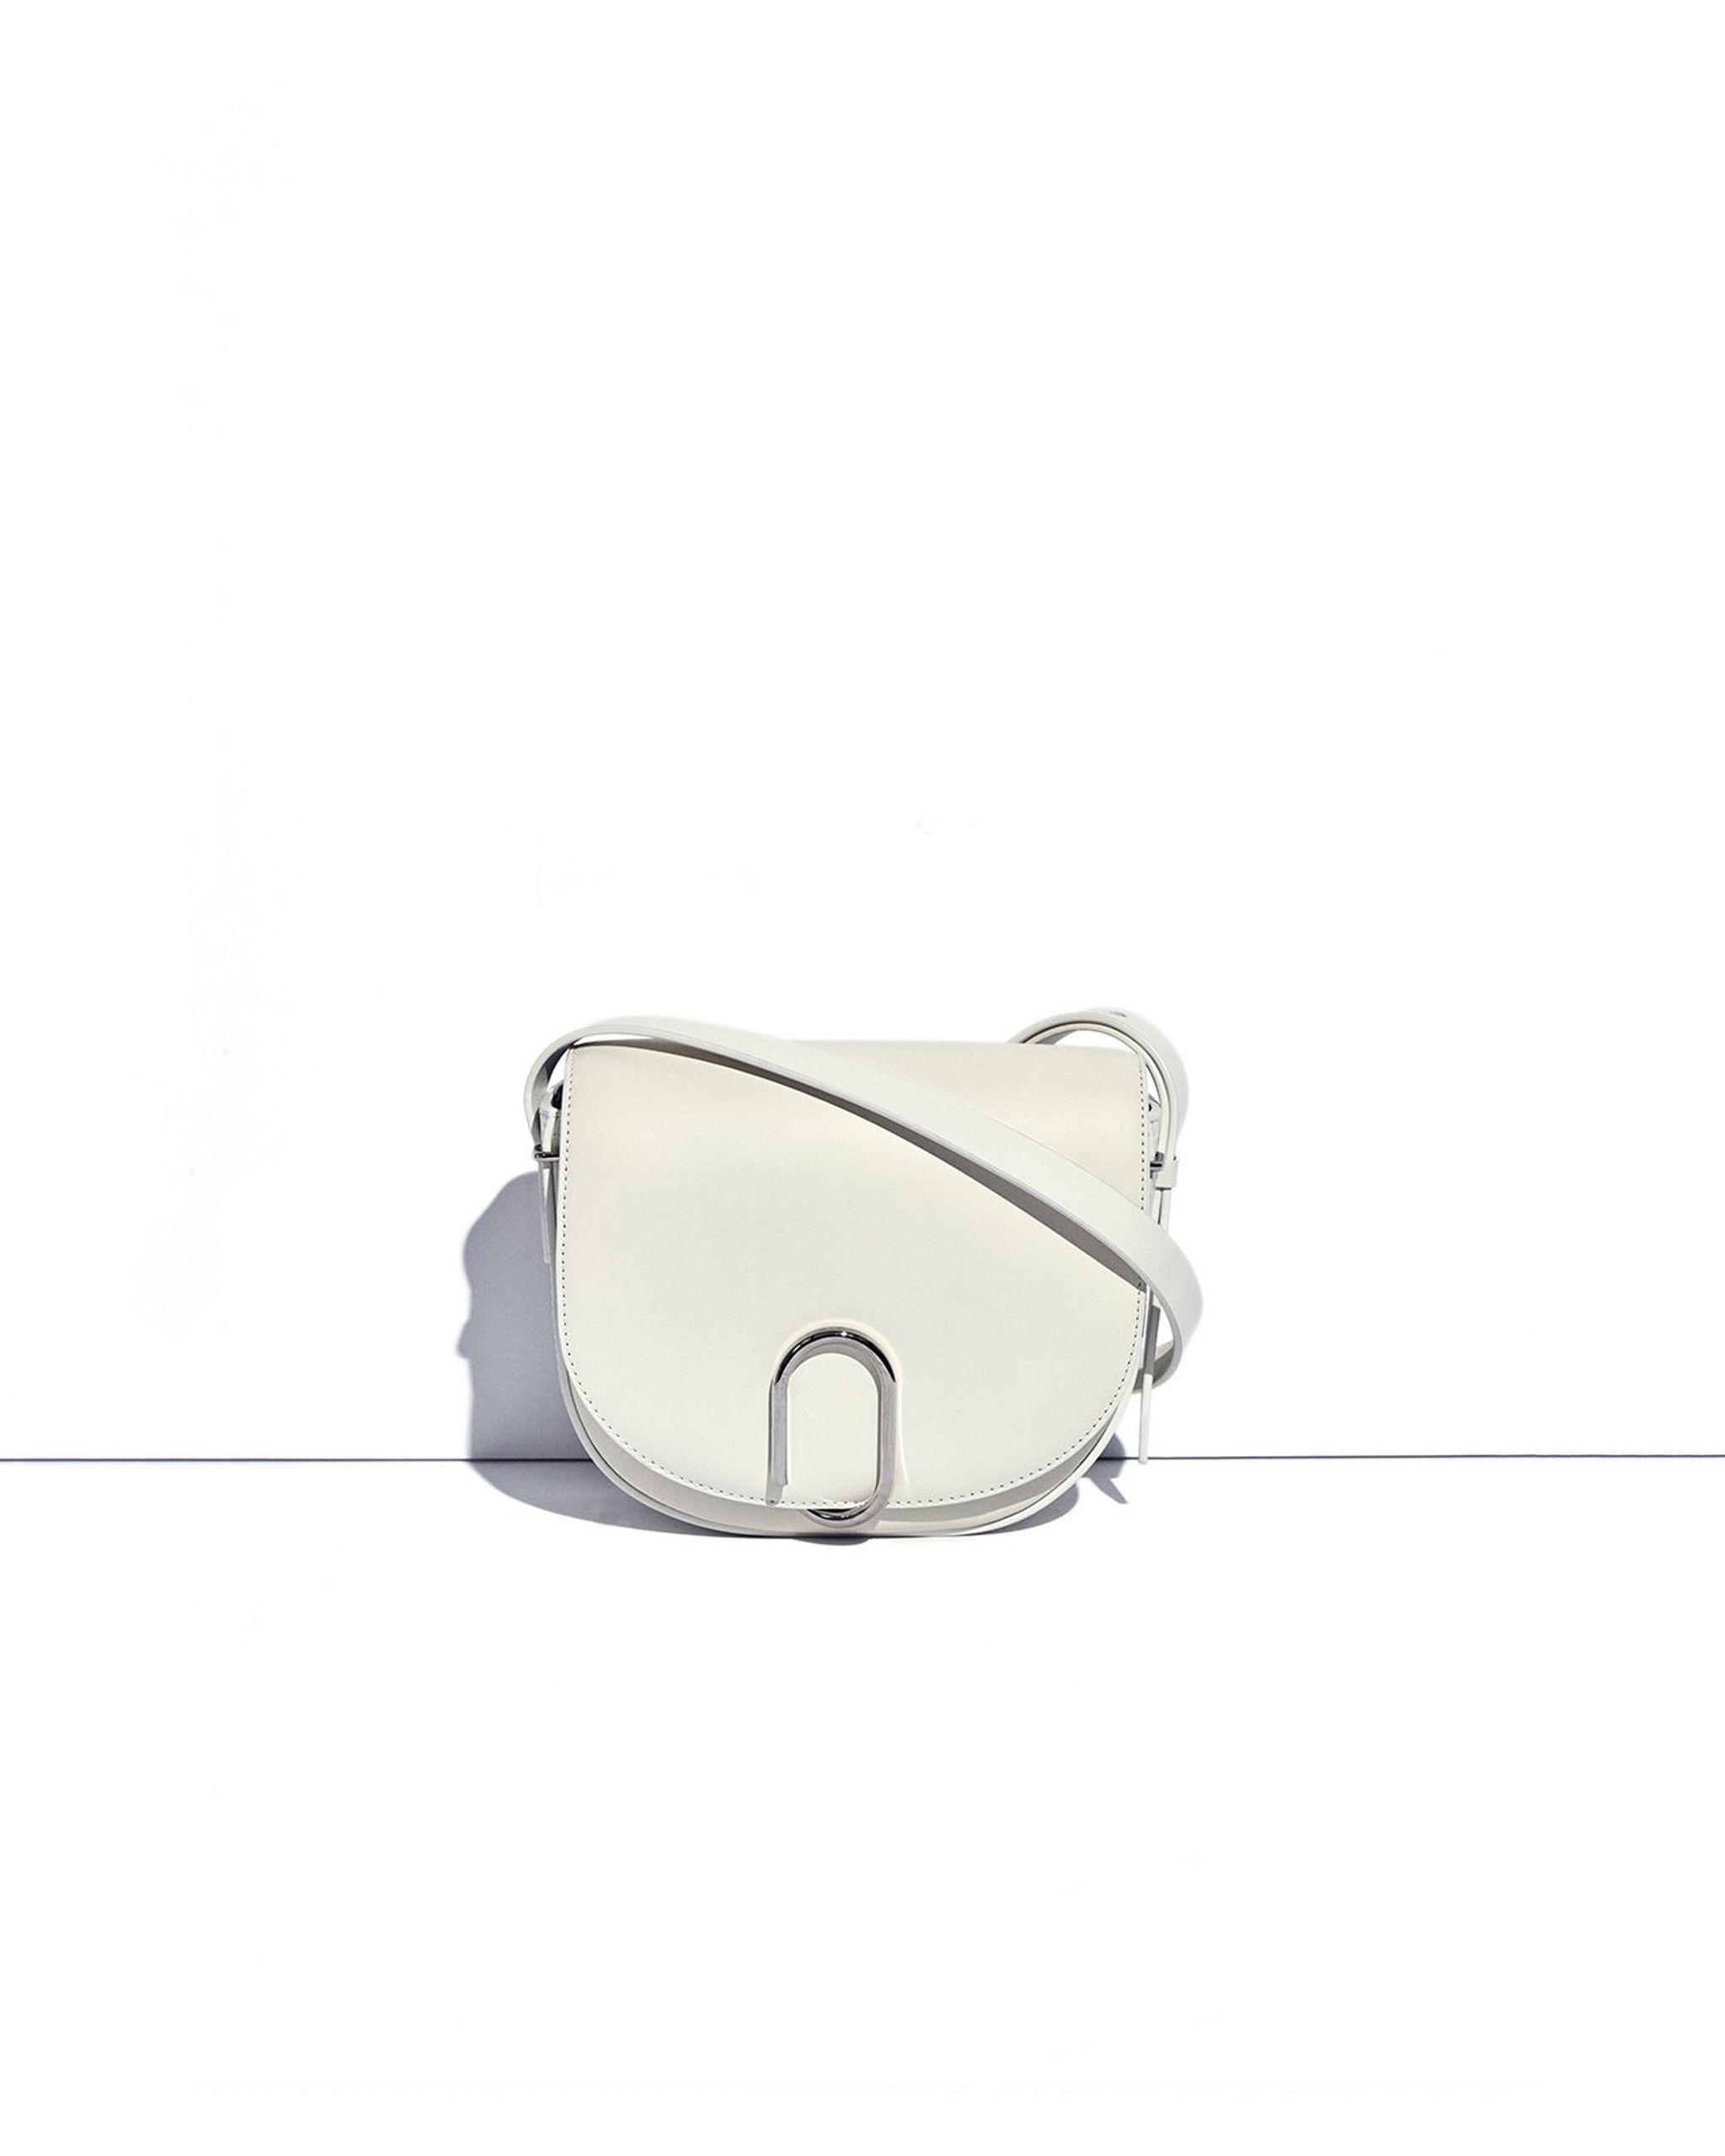 3.1 Phillip Lim Leather Alix Saddle Crossbody in White